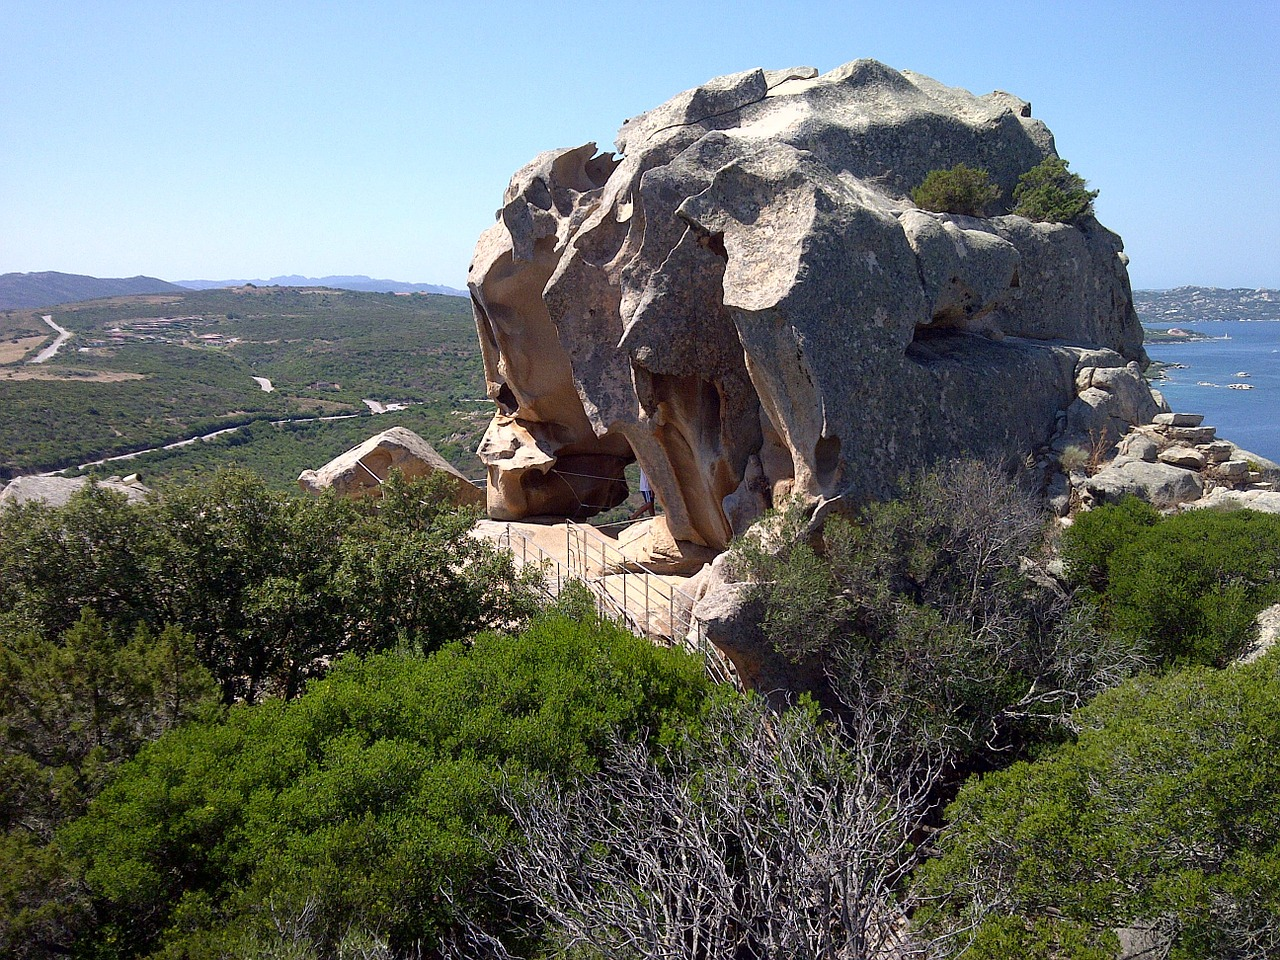 Capo dorso in the sardinian countryside